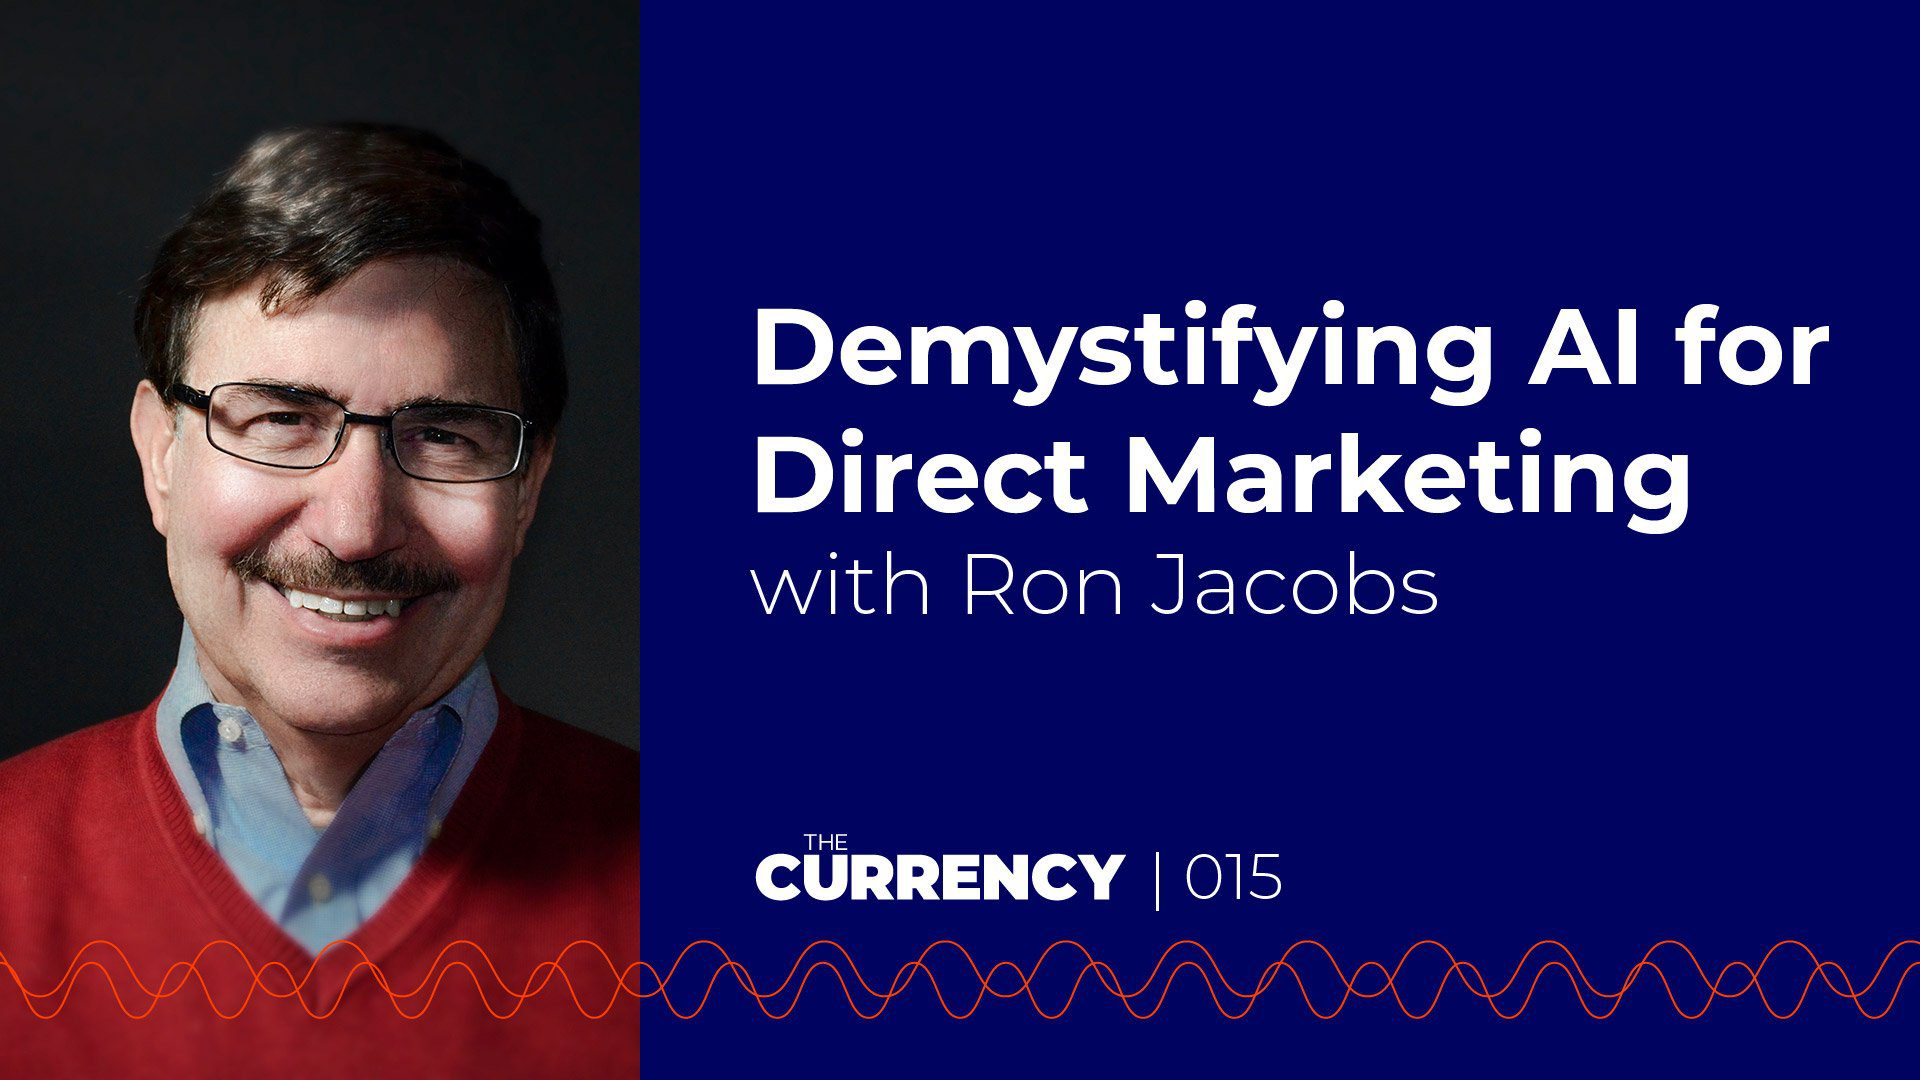 The Currency: [015] Demystifying AI for Direct Marketing with Ron Jacobs